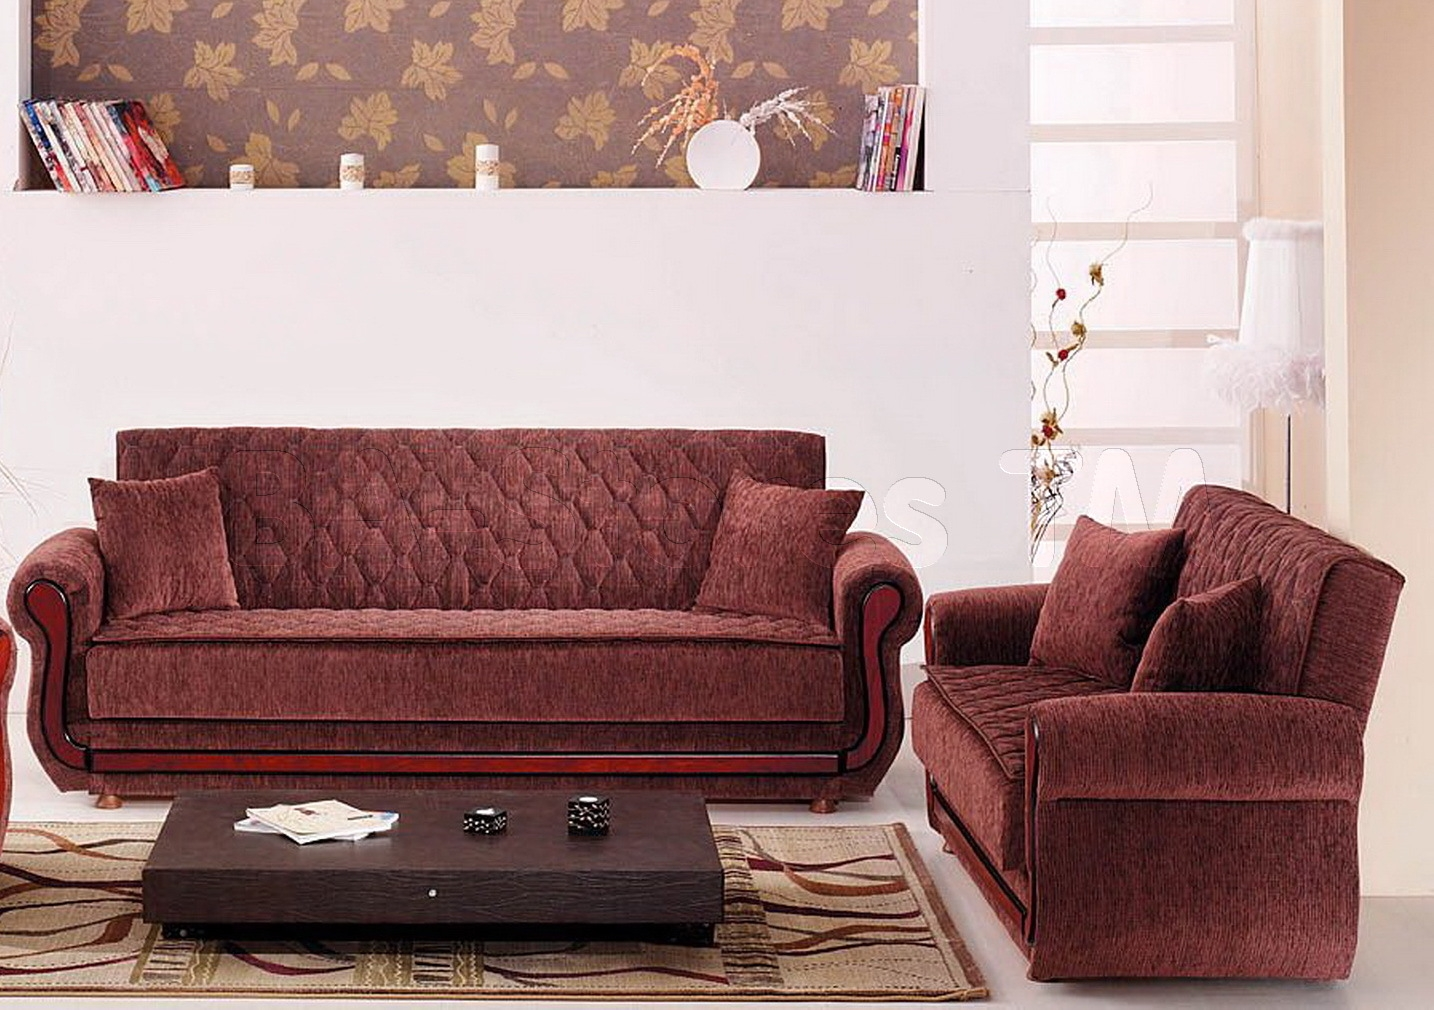 Awesome Sofa Chair Set Ideas Design Ideas Collections Throughout Sofa And Chair Set (Image 1 of 15)